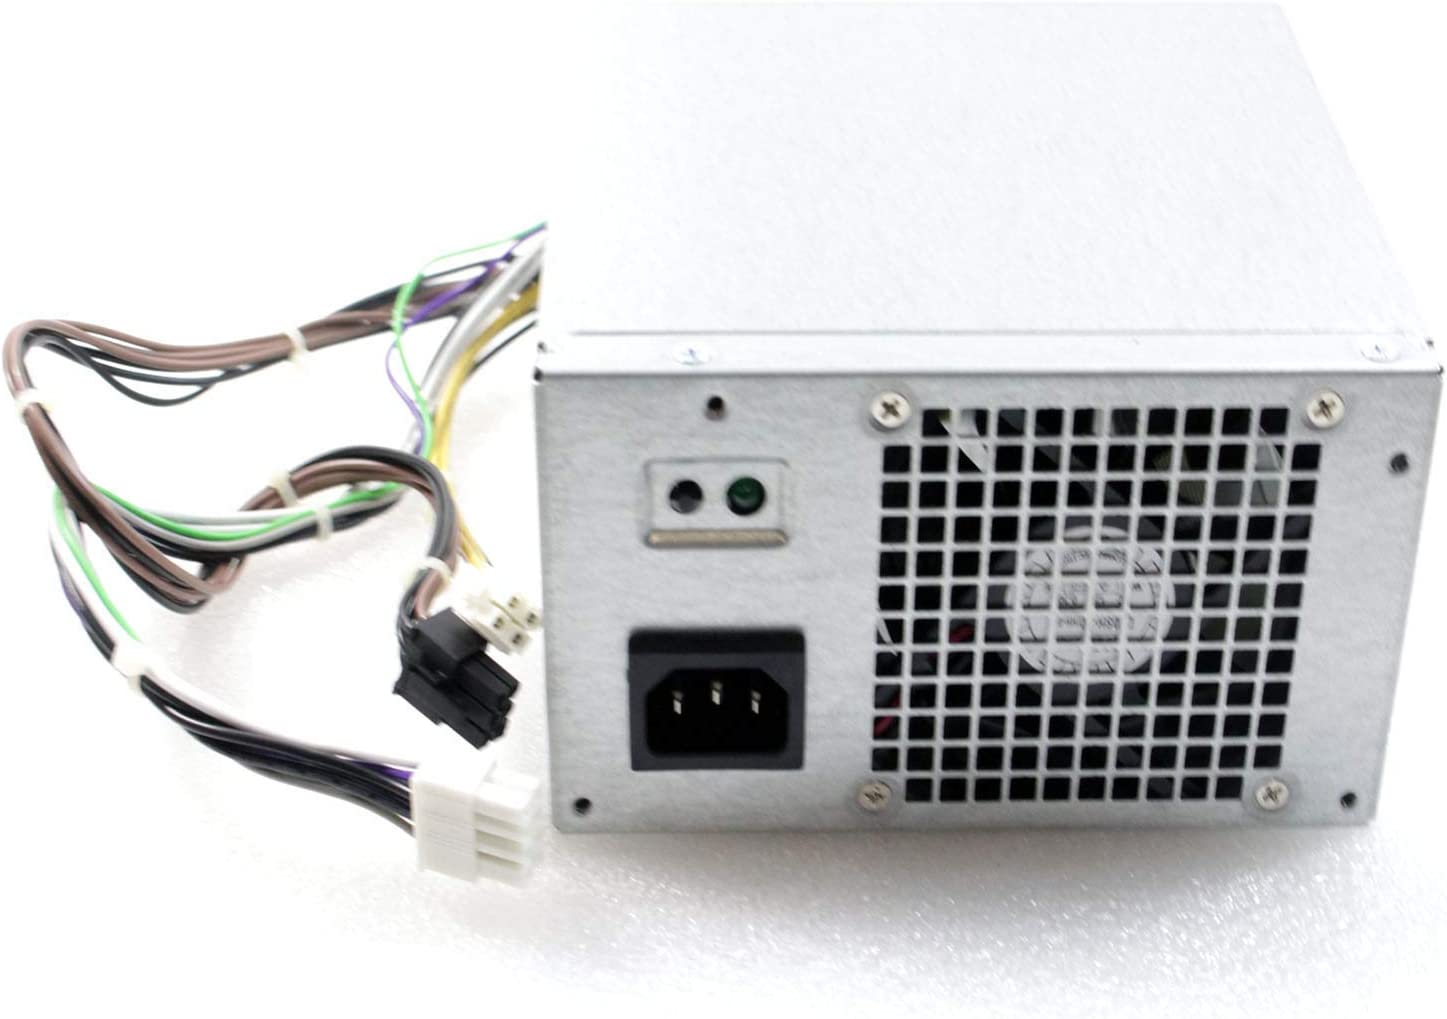 T1m43 T1700 365W RENEWED OFFicial mail order Industry No. 1 PSU